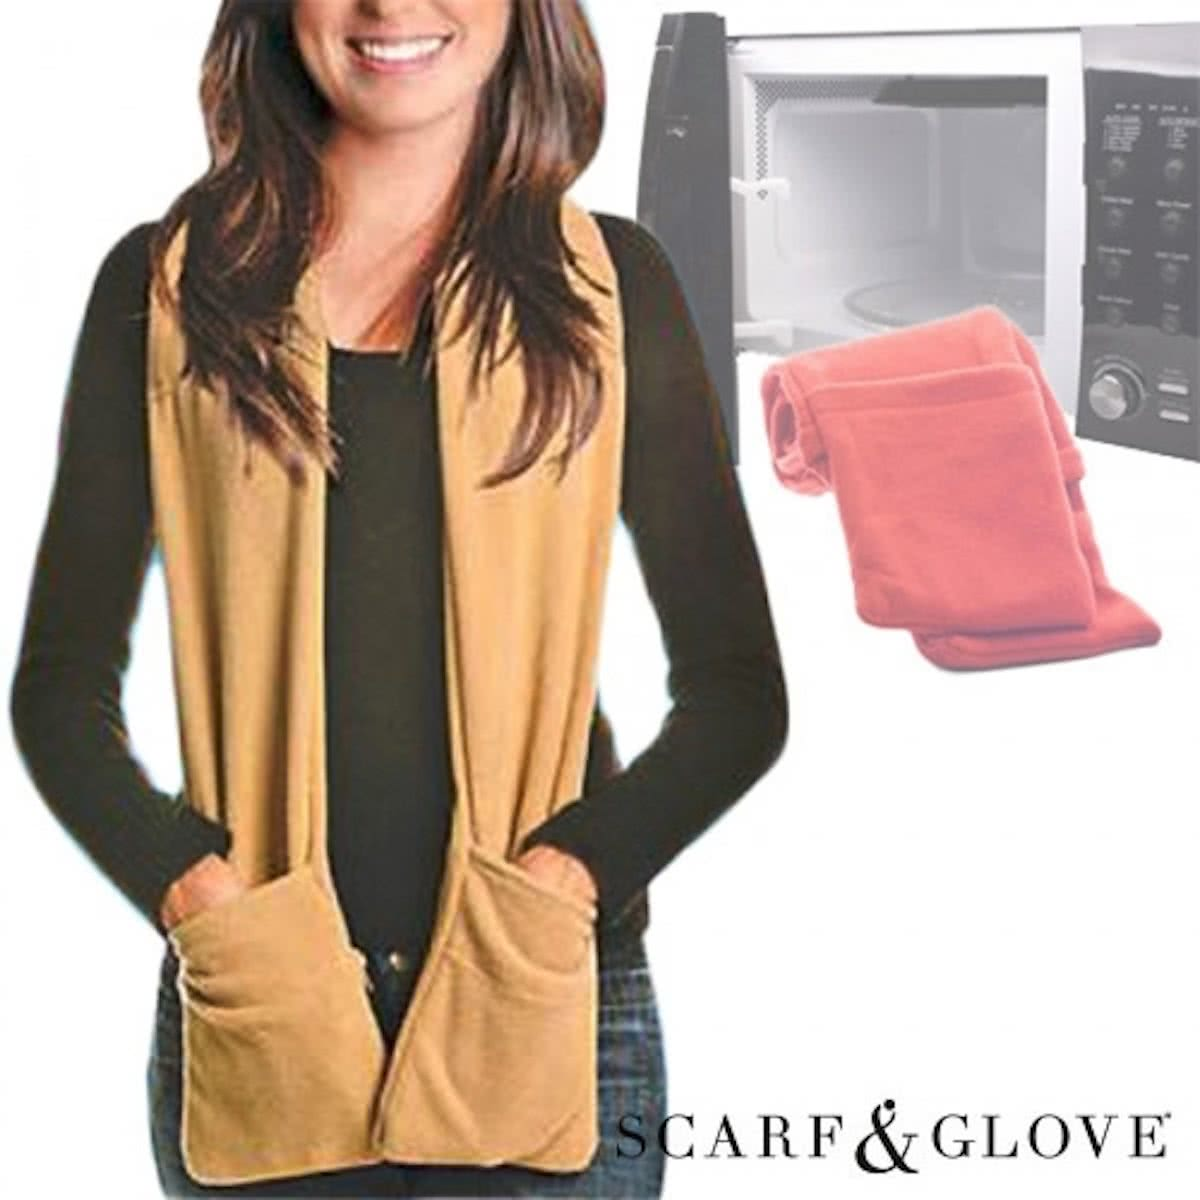 Scarf & Glove for Microwave | Scarf with Pockets